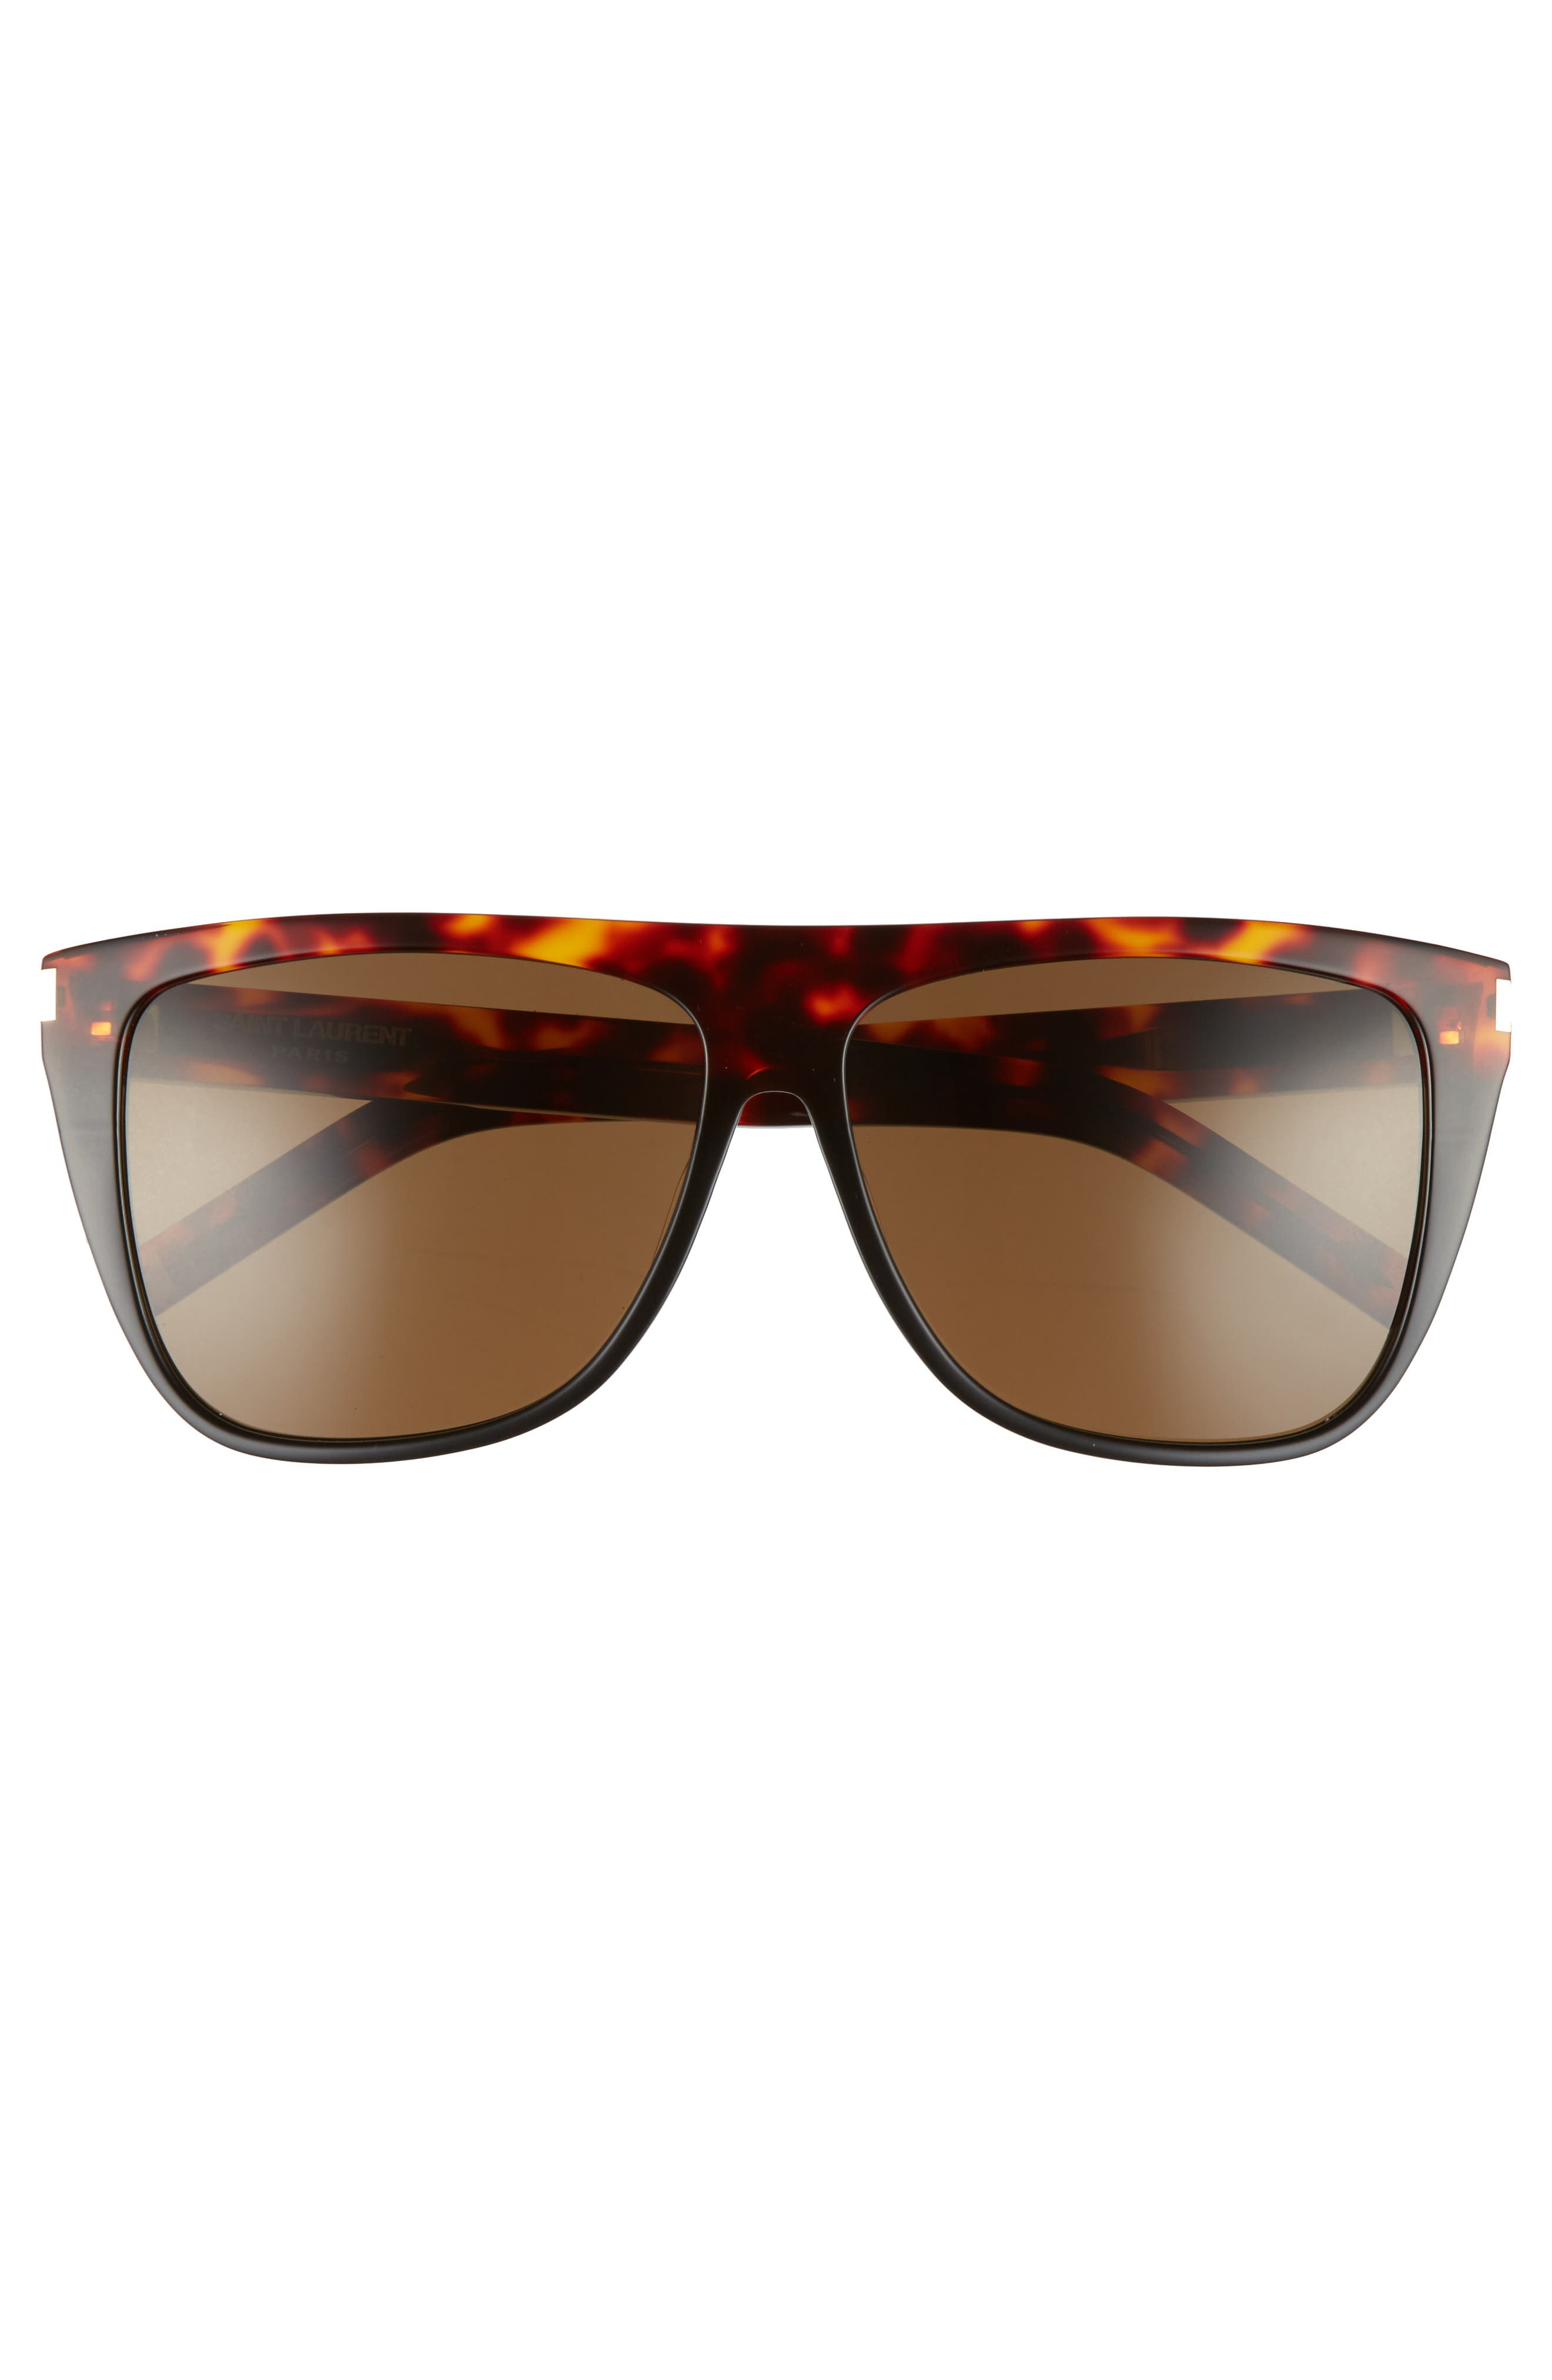 Alternate Image 3  - Saint Laurent SL1 59mm Flat Top Sunglasses